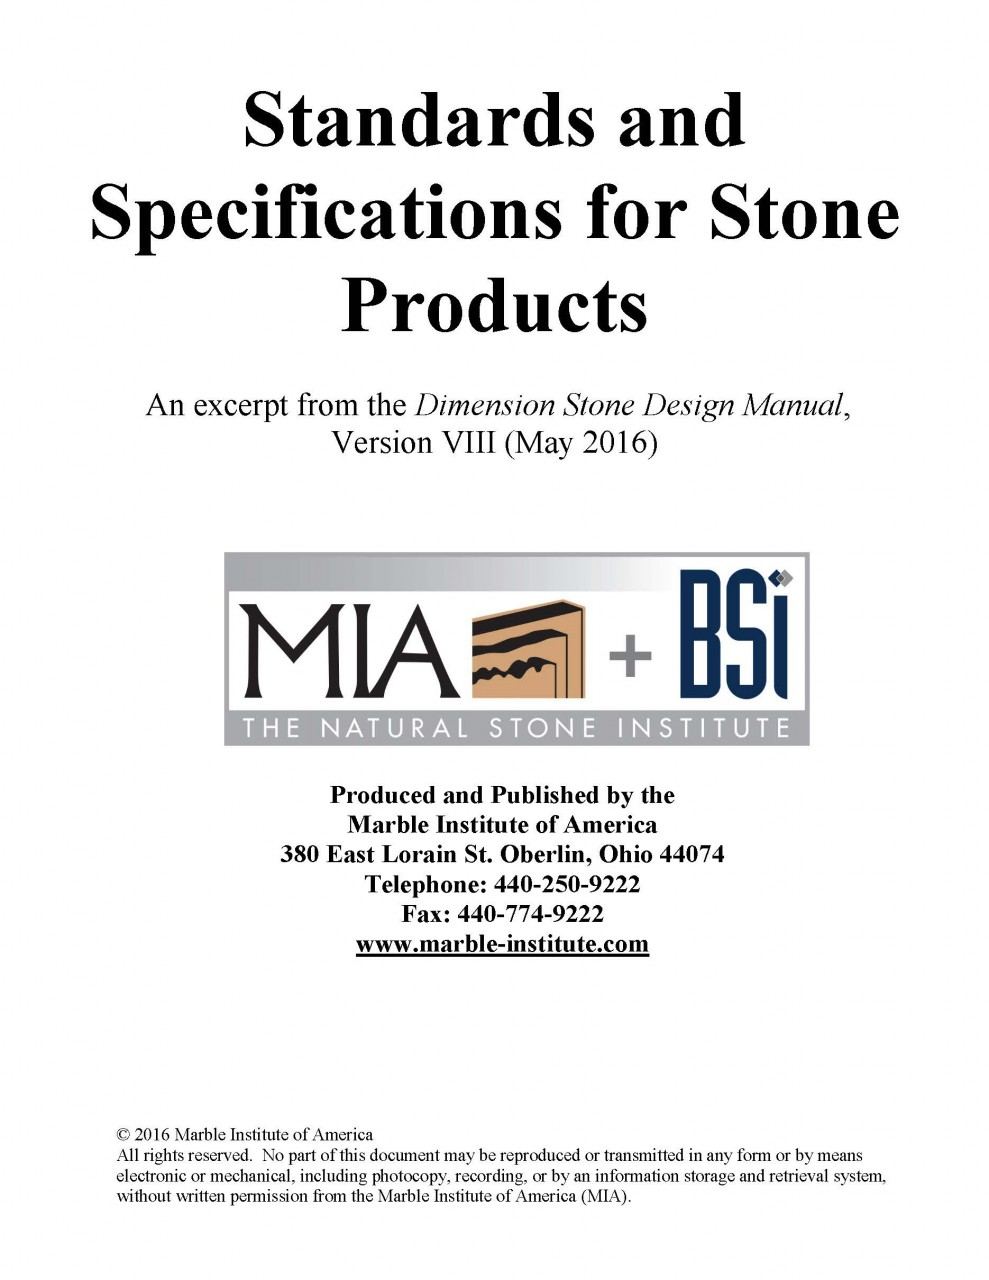 MIA + BSI STANDAR AND SPECIFICATIONS STONE PRODUCTS